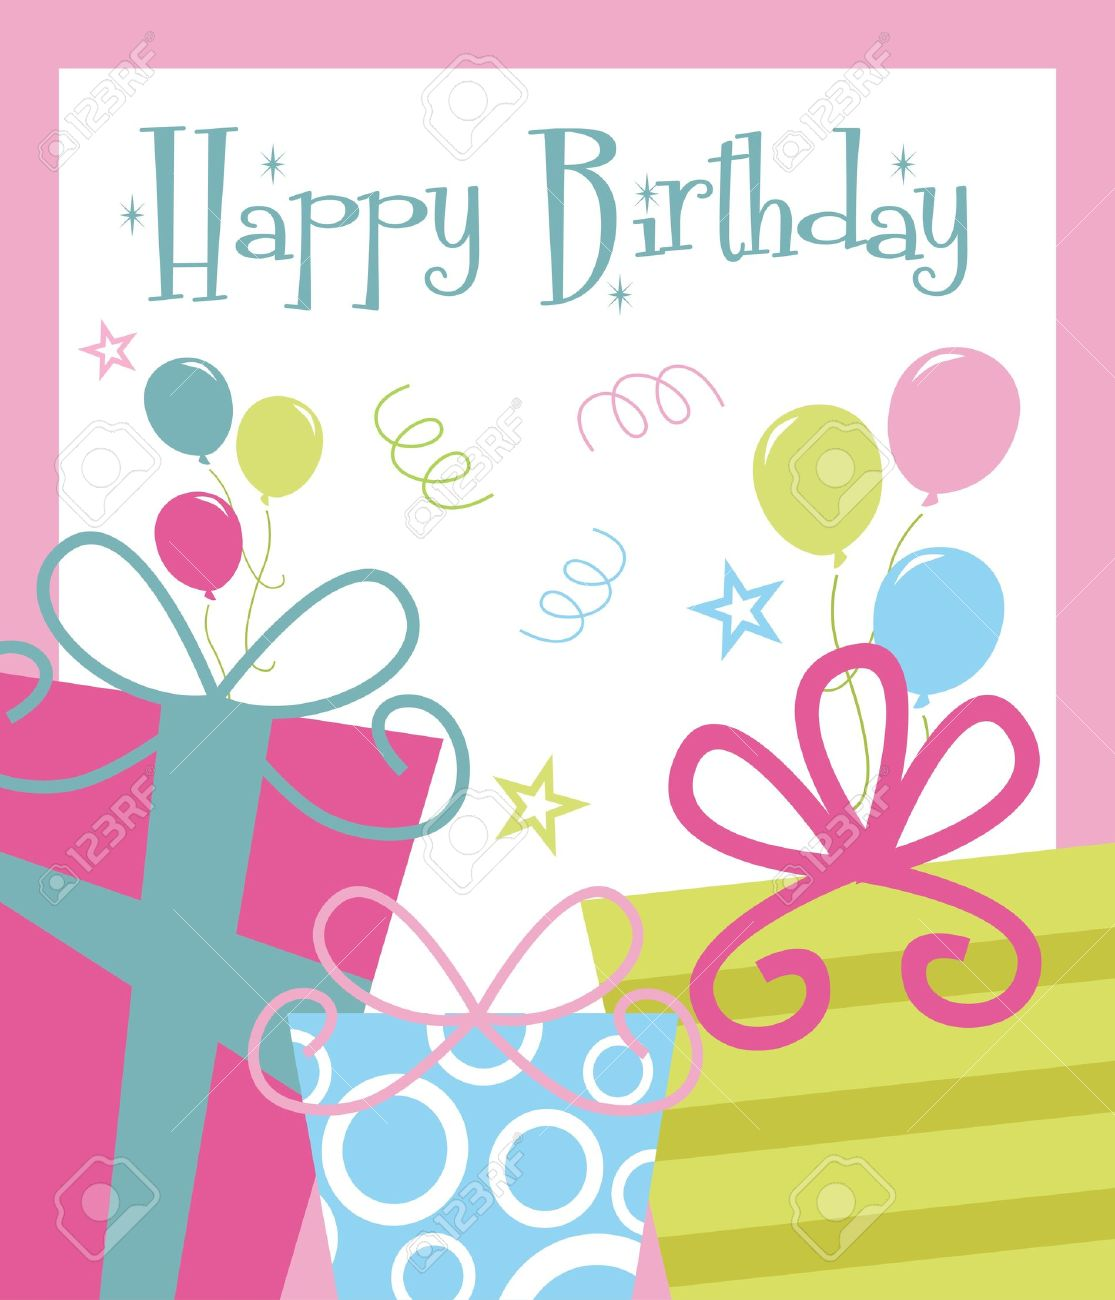 Birthday Greeting Cards Clipart.